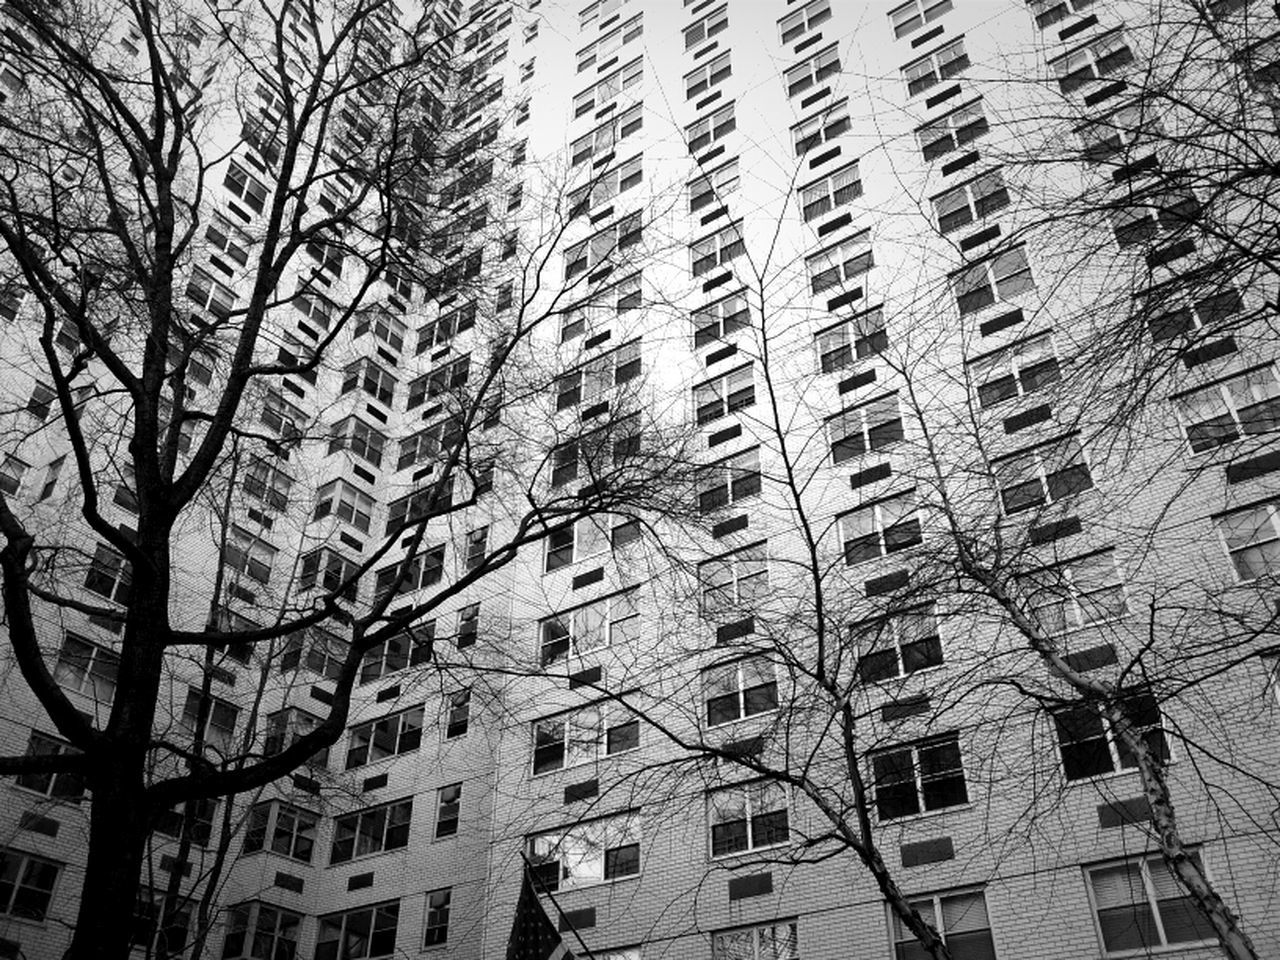 architecture, building exterior, low angle view, built structure, window, day, growth, no people, residential building, city, outdoors, tree, skyscraper